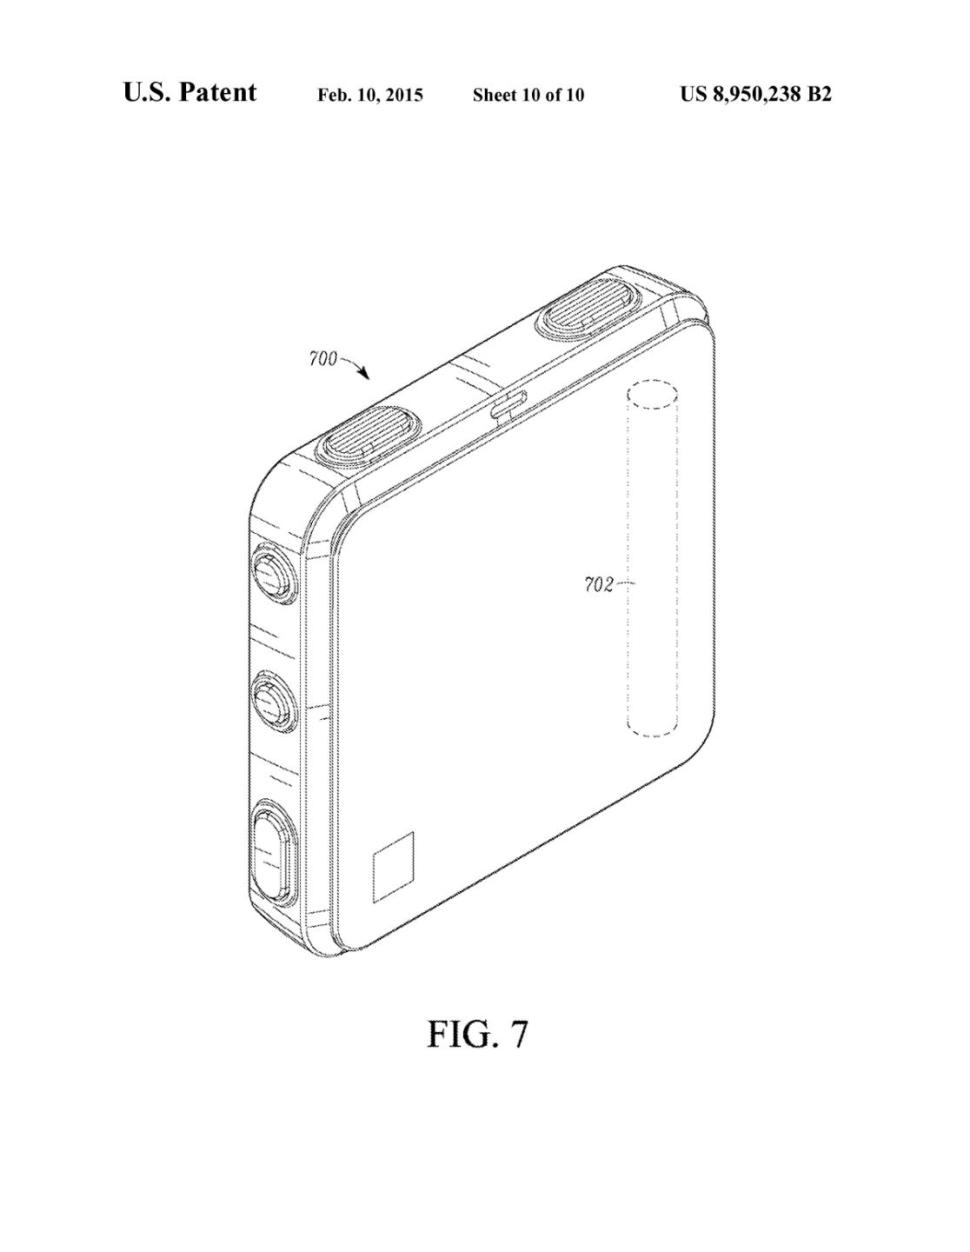 Google gets patent for a new body odor removing device